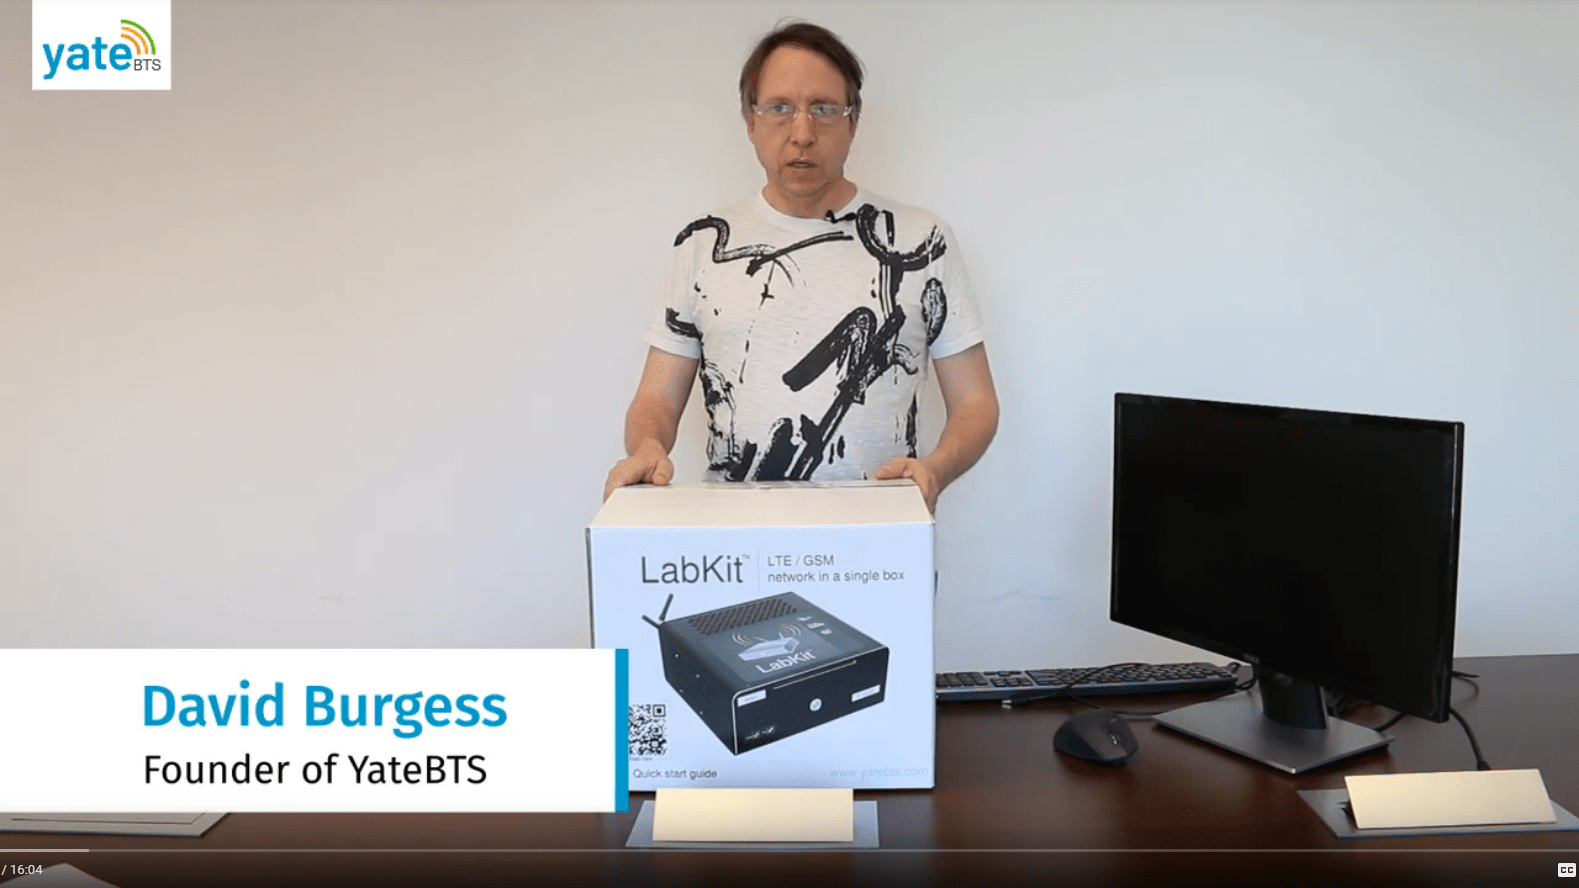 Unboxing of YateBTS LTE LabKit with David Burgess